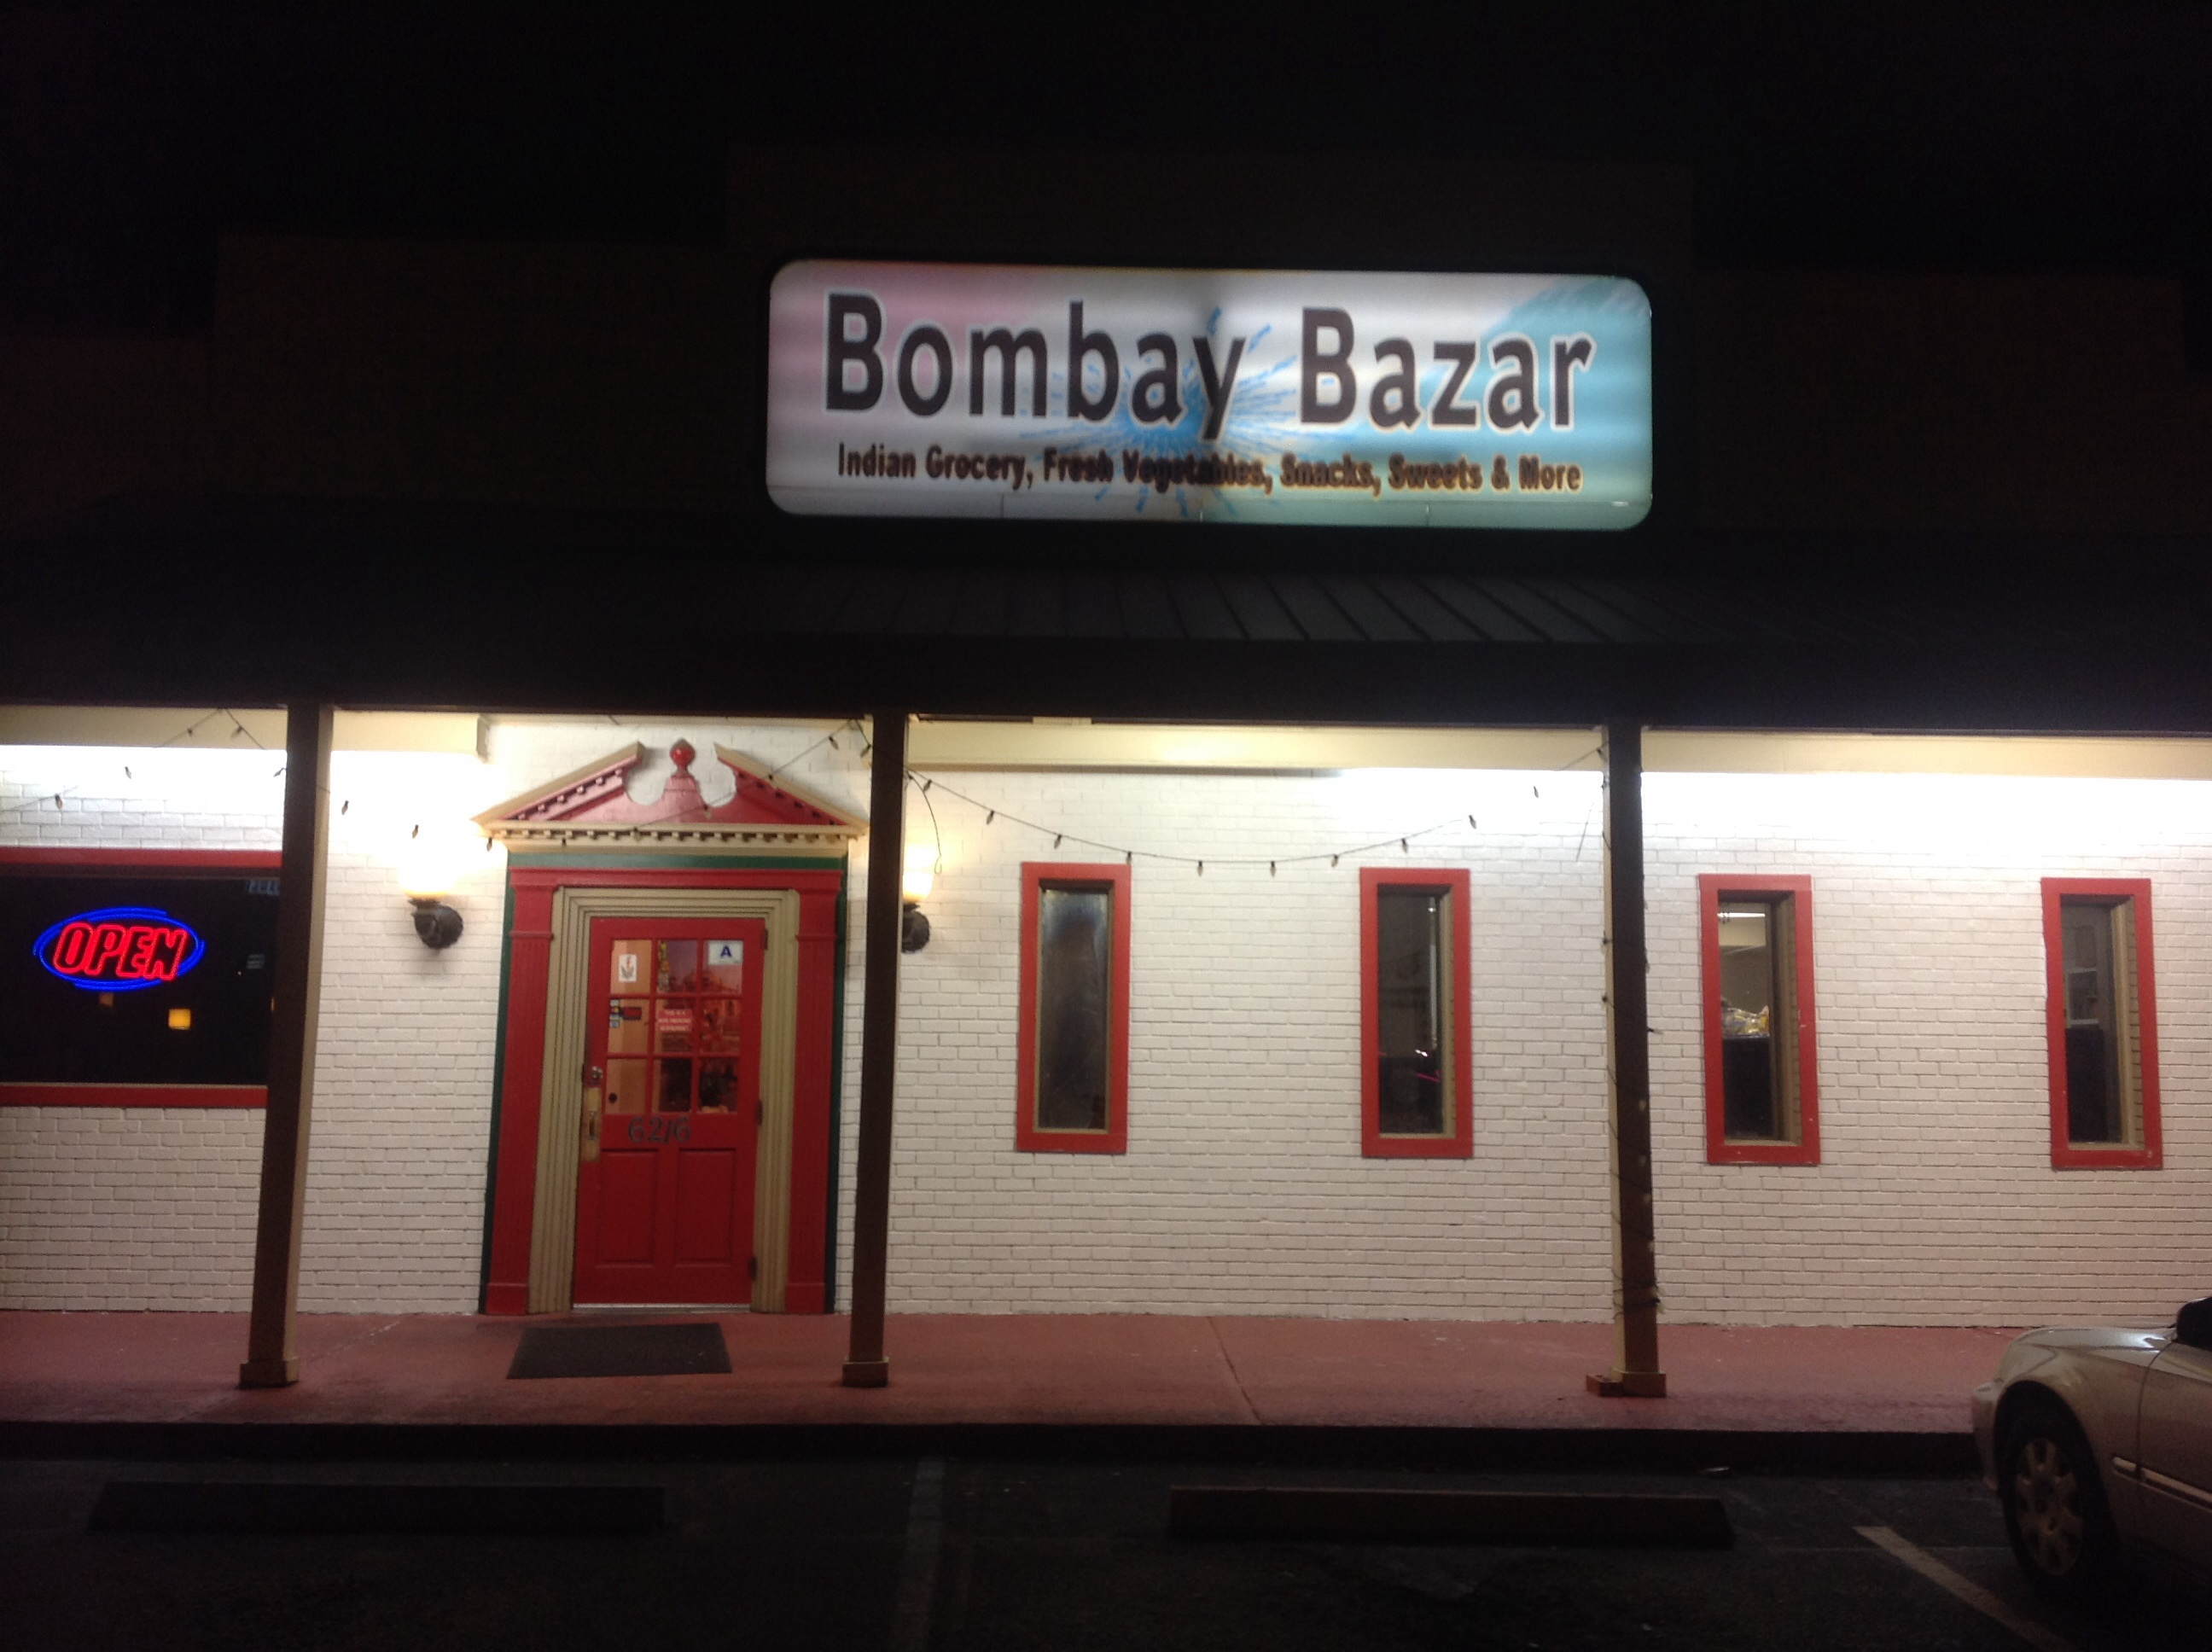 Bombay Bazar Indian Restaurant